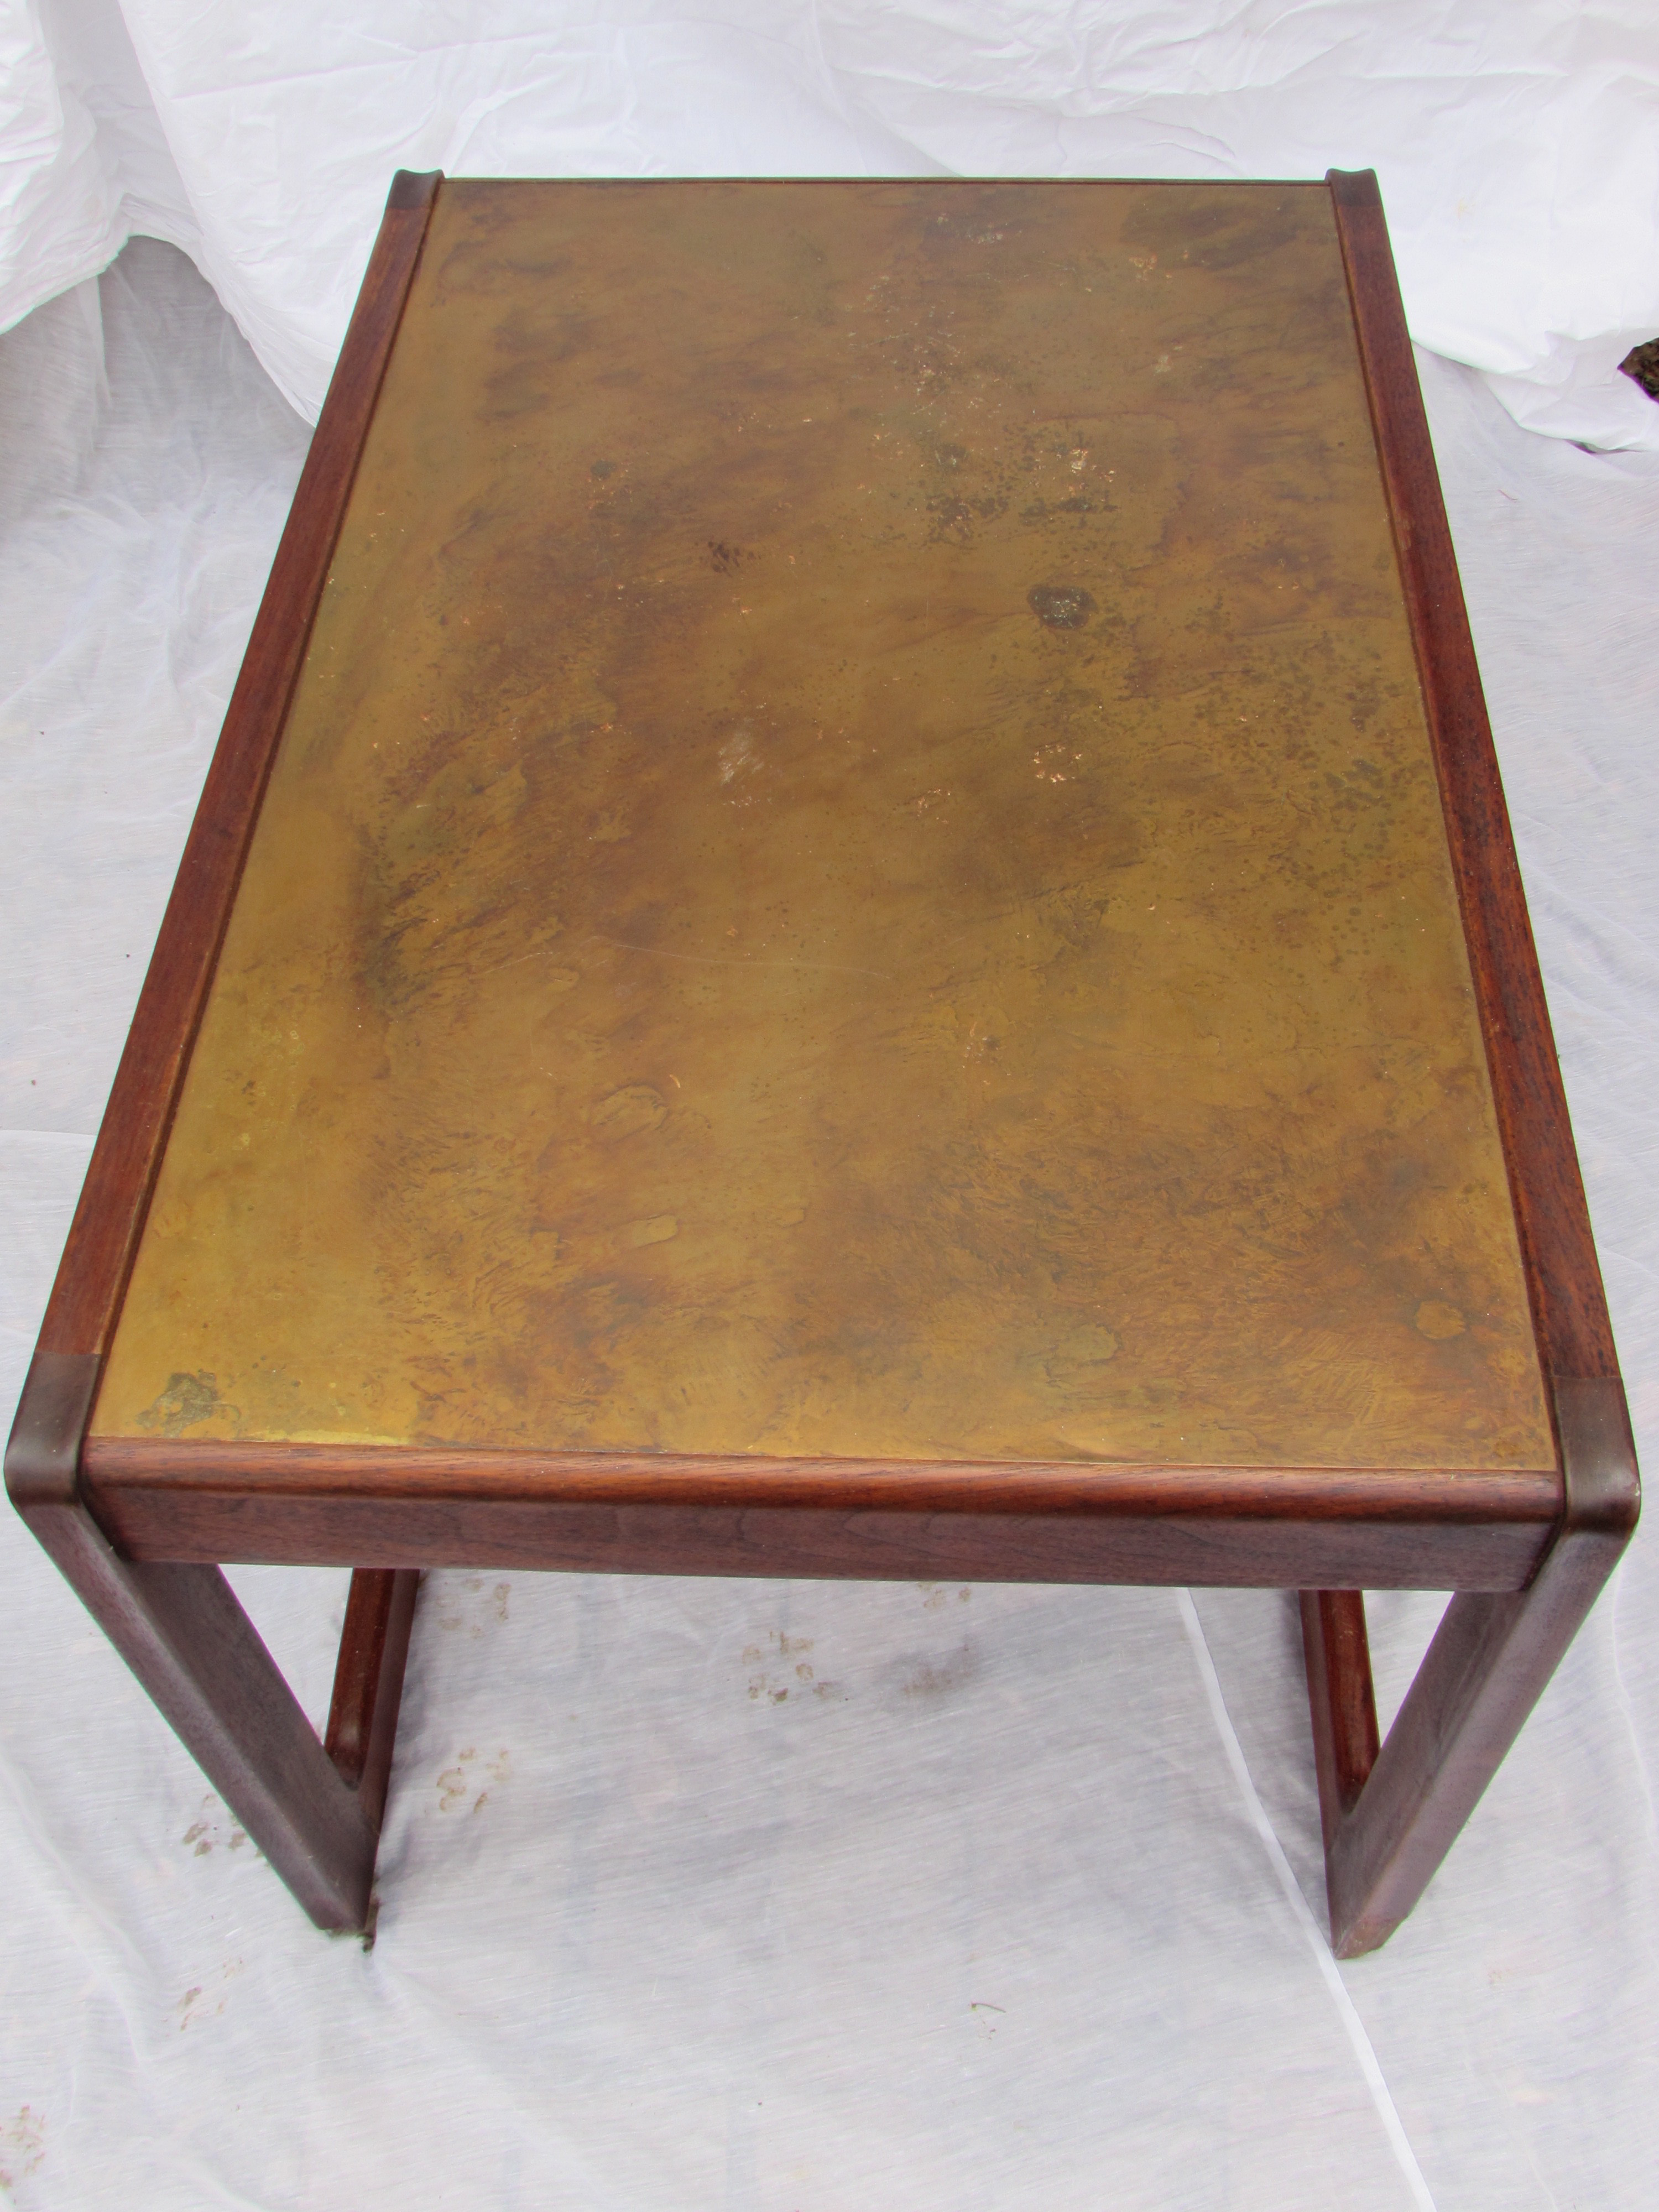 MidCentury RosewoodCopper Top Coffee TableChairish